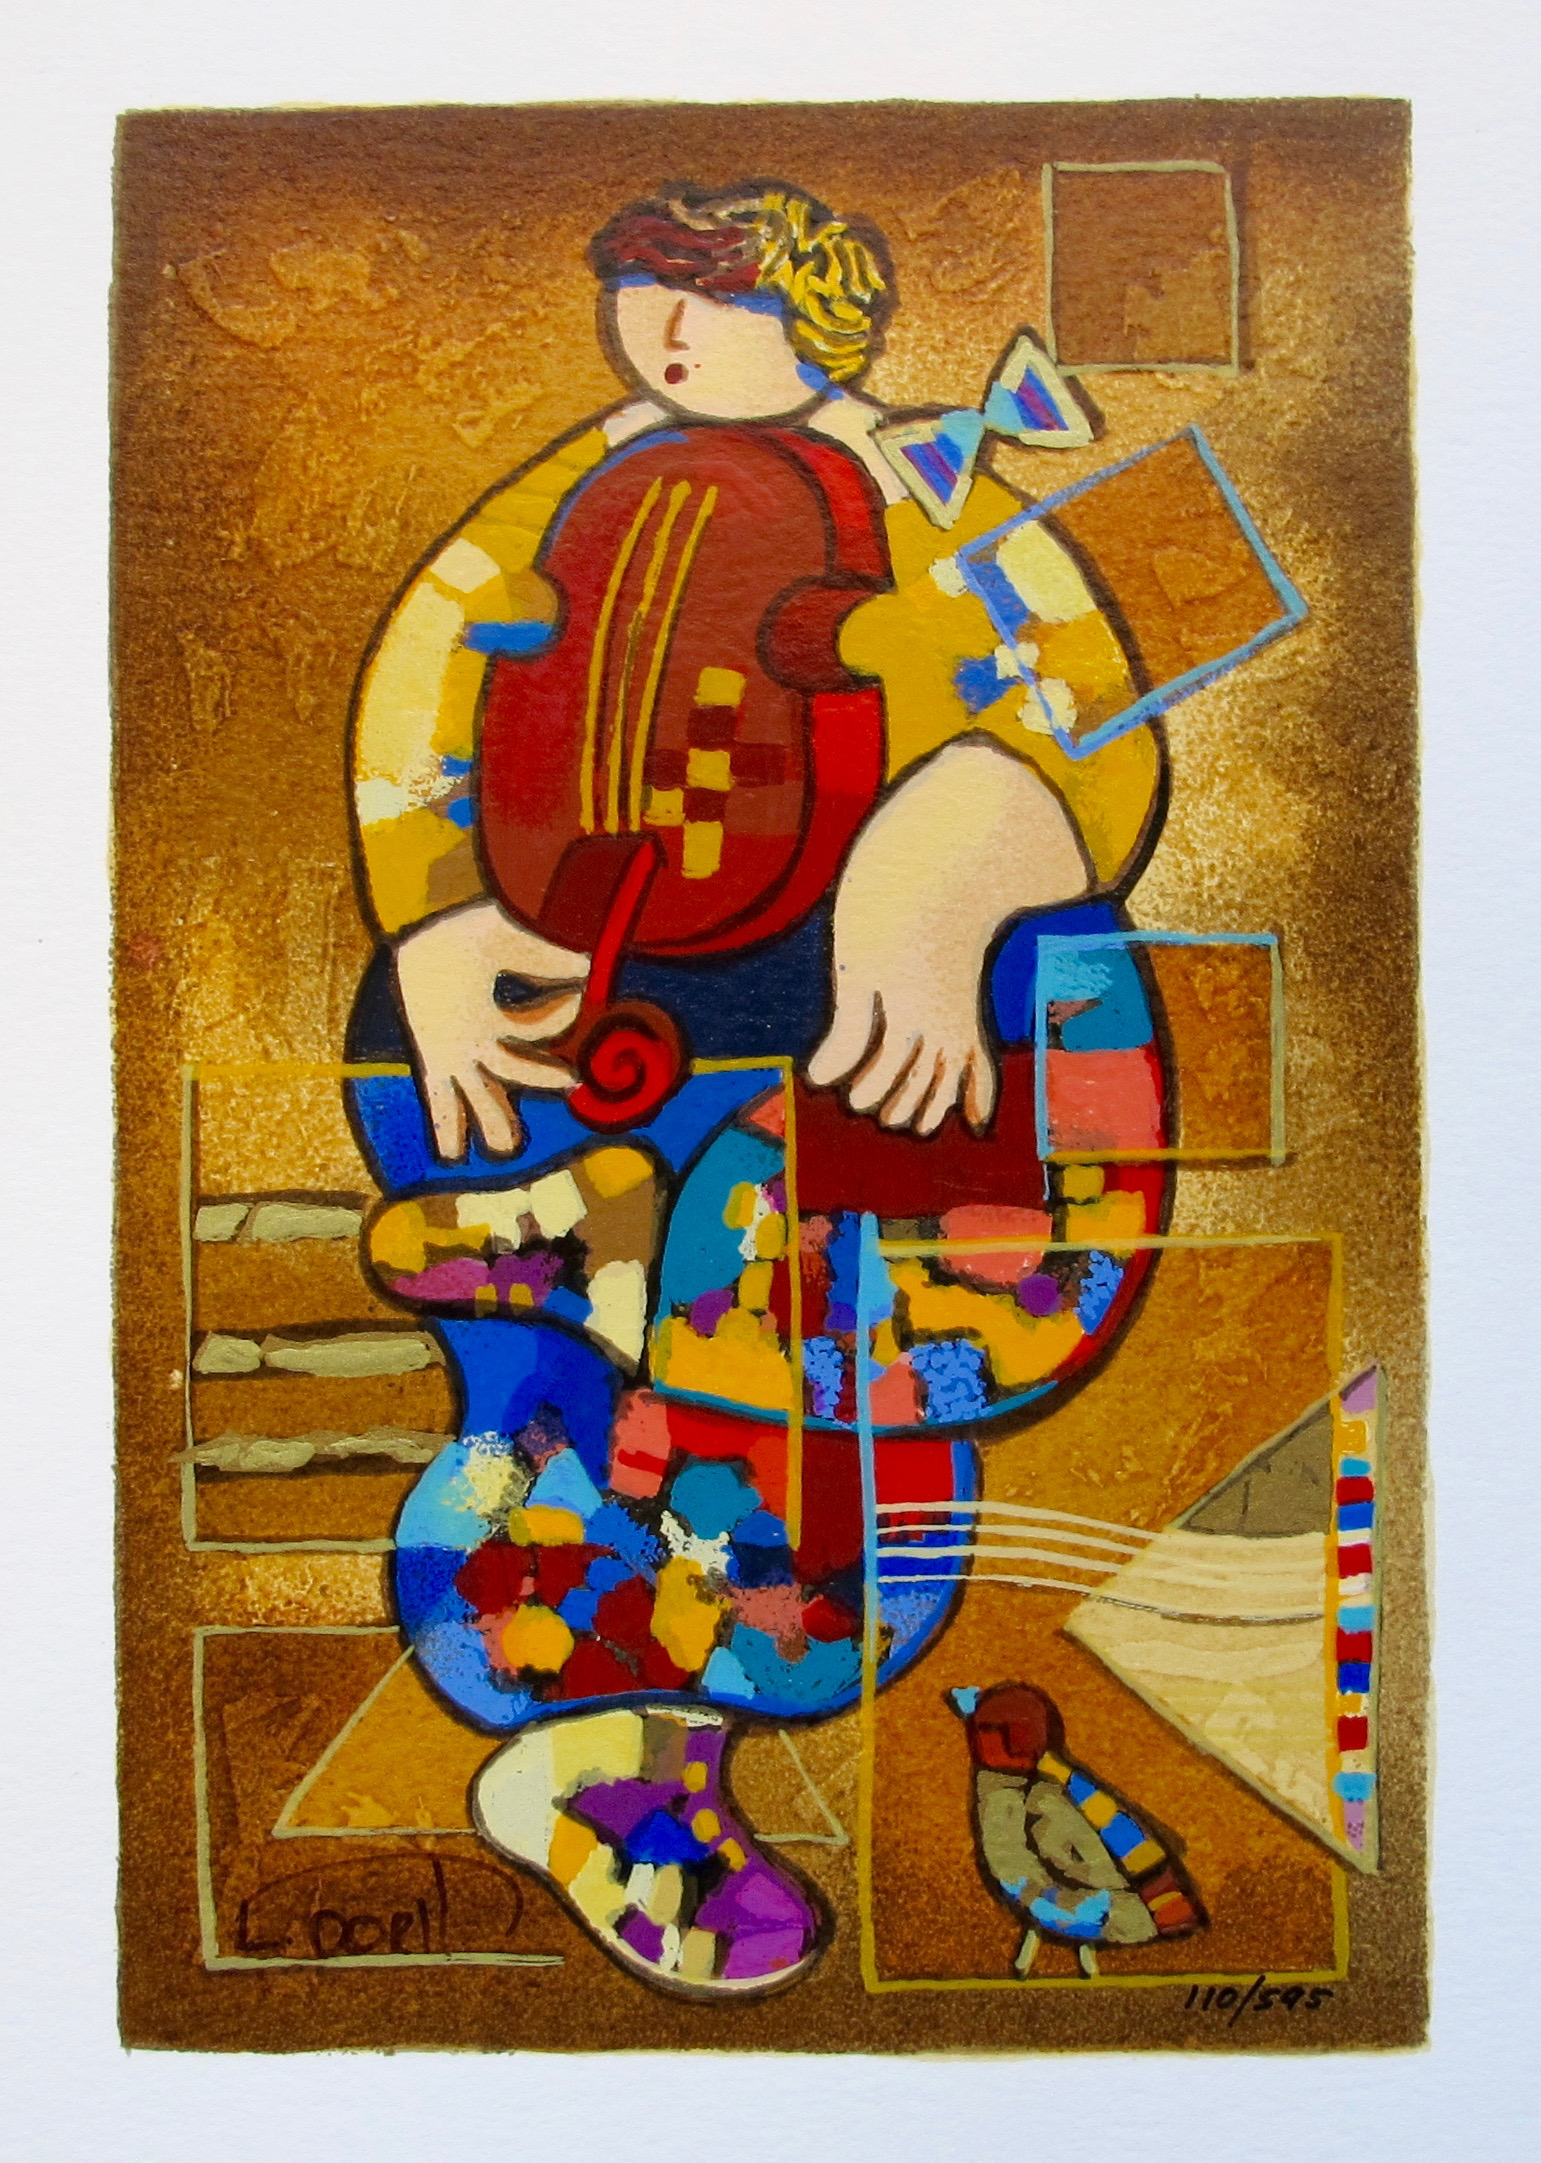 Dorit Levi MERRY VIOLIN Hand Signed Limited Edition Serigraph